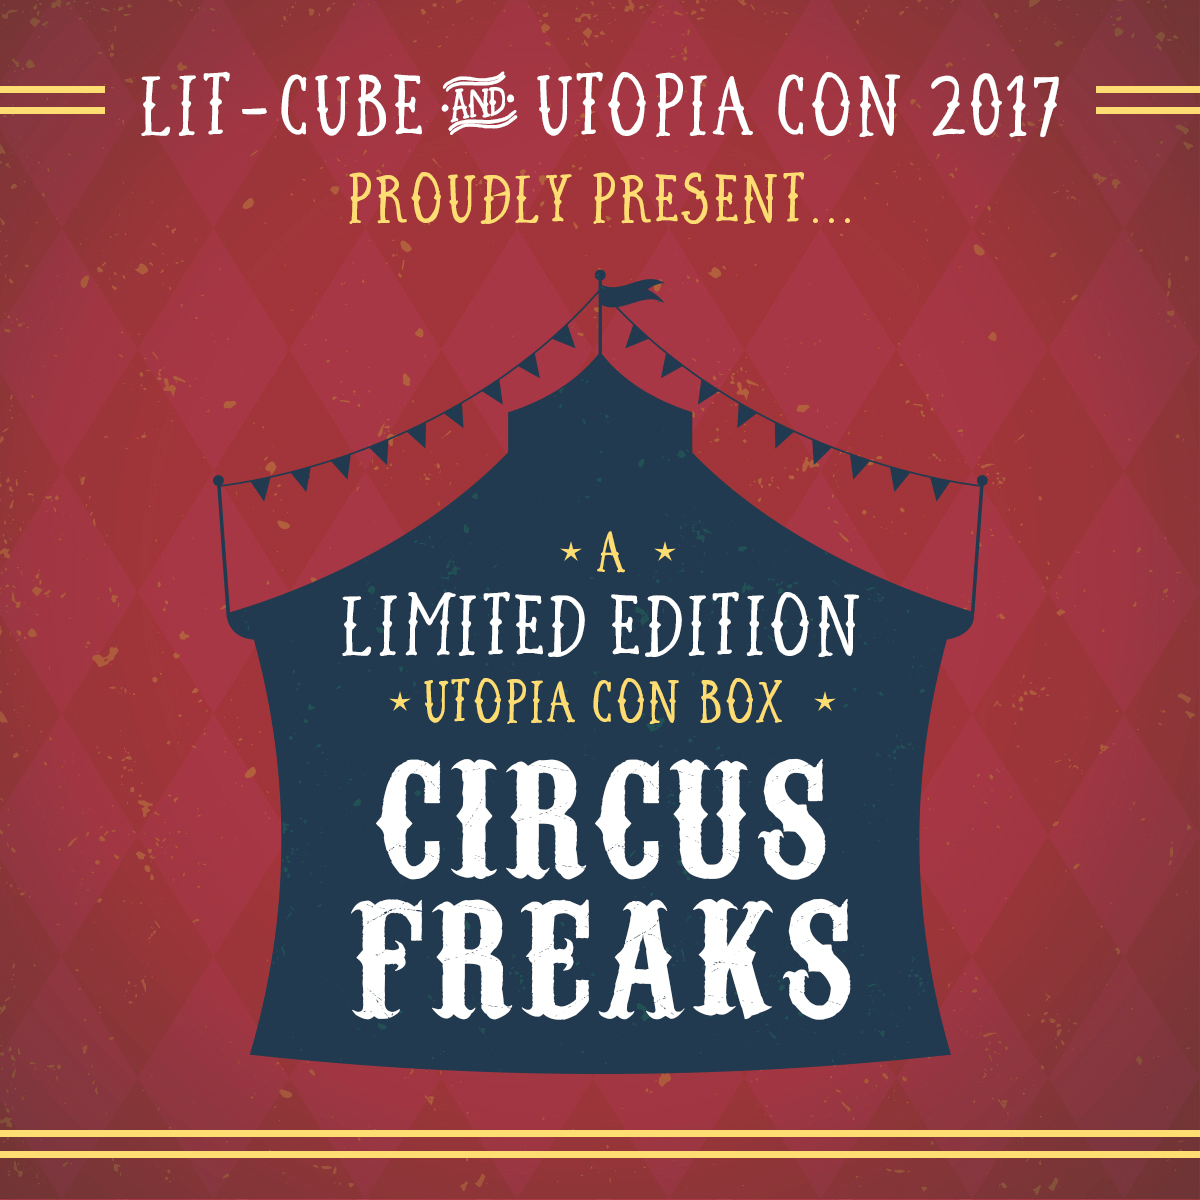 Lit-Cube Limited Edition Circus Freaks Box On Sale!